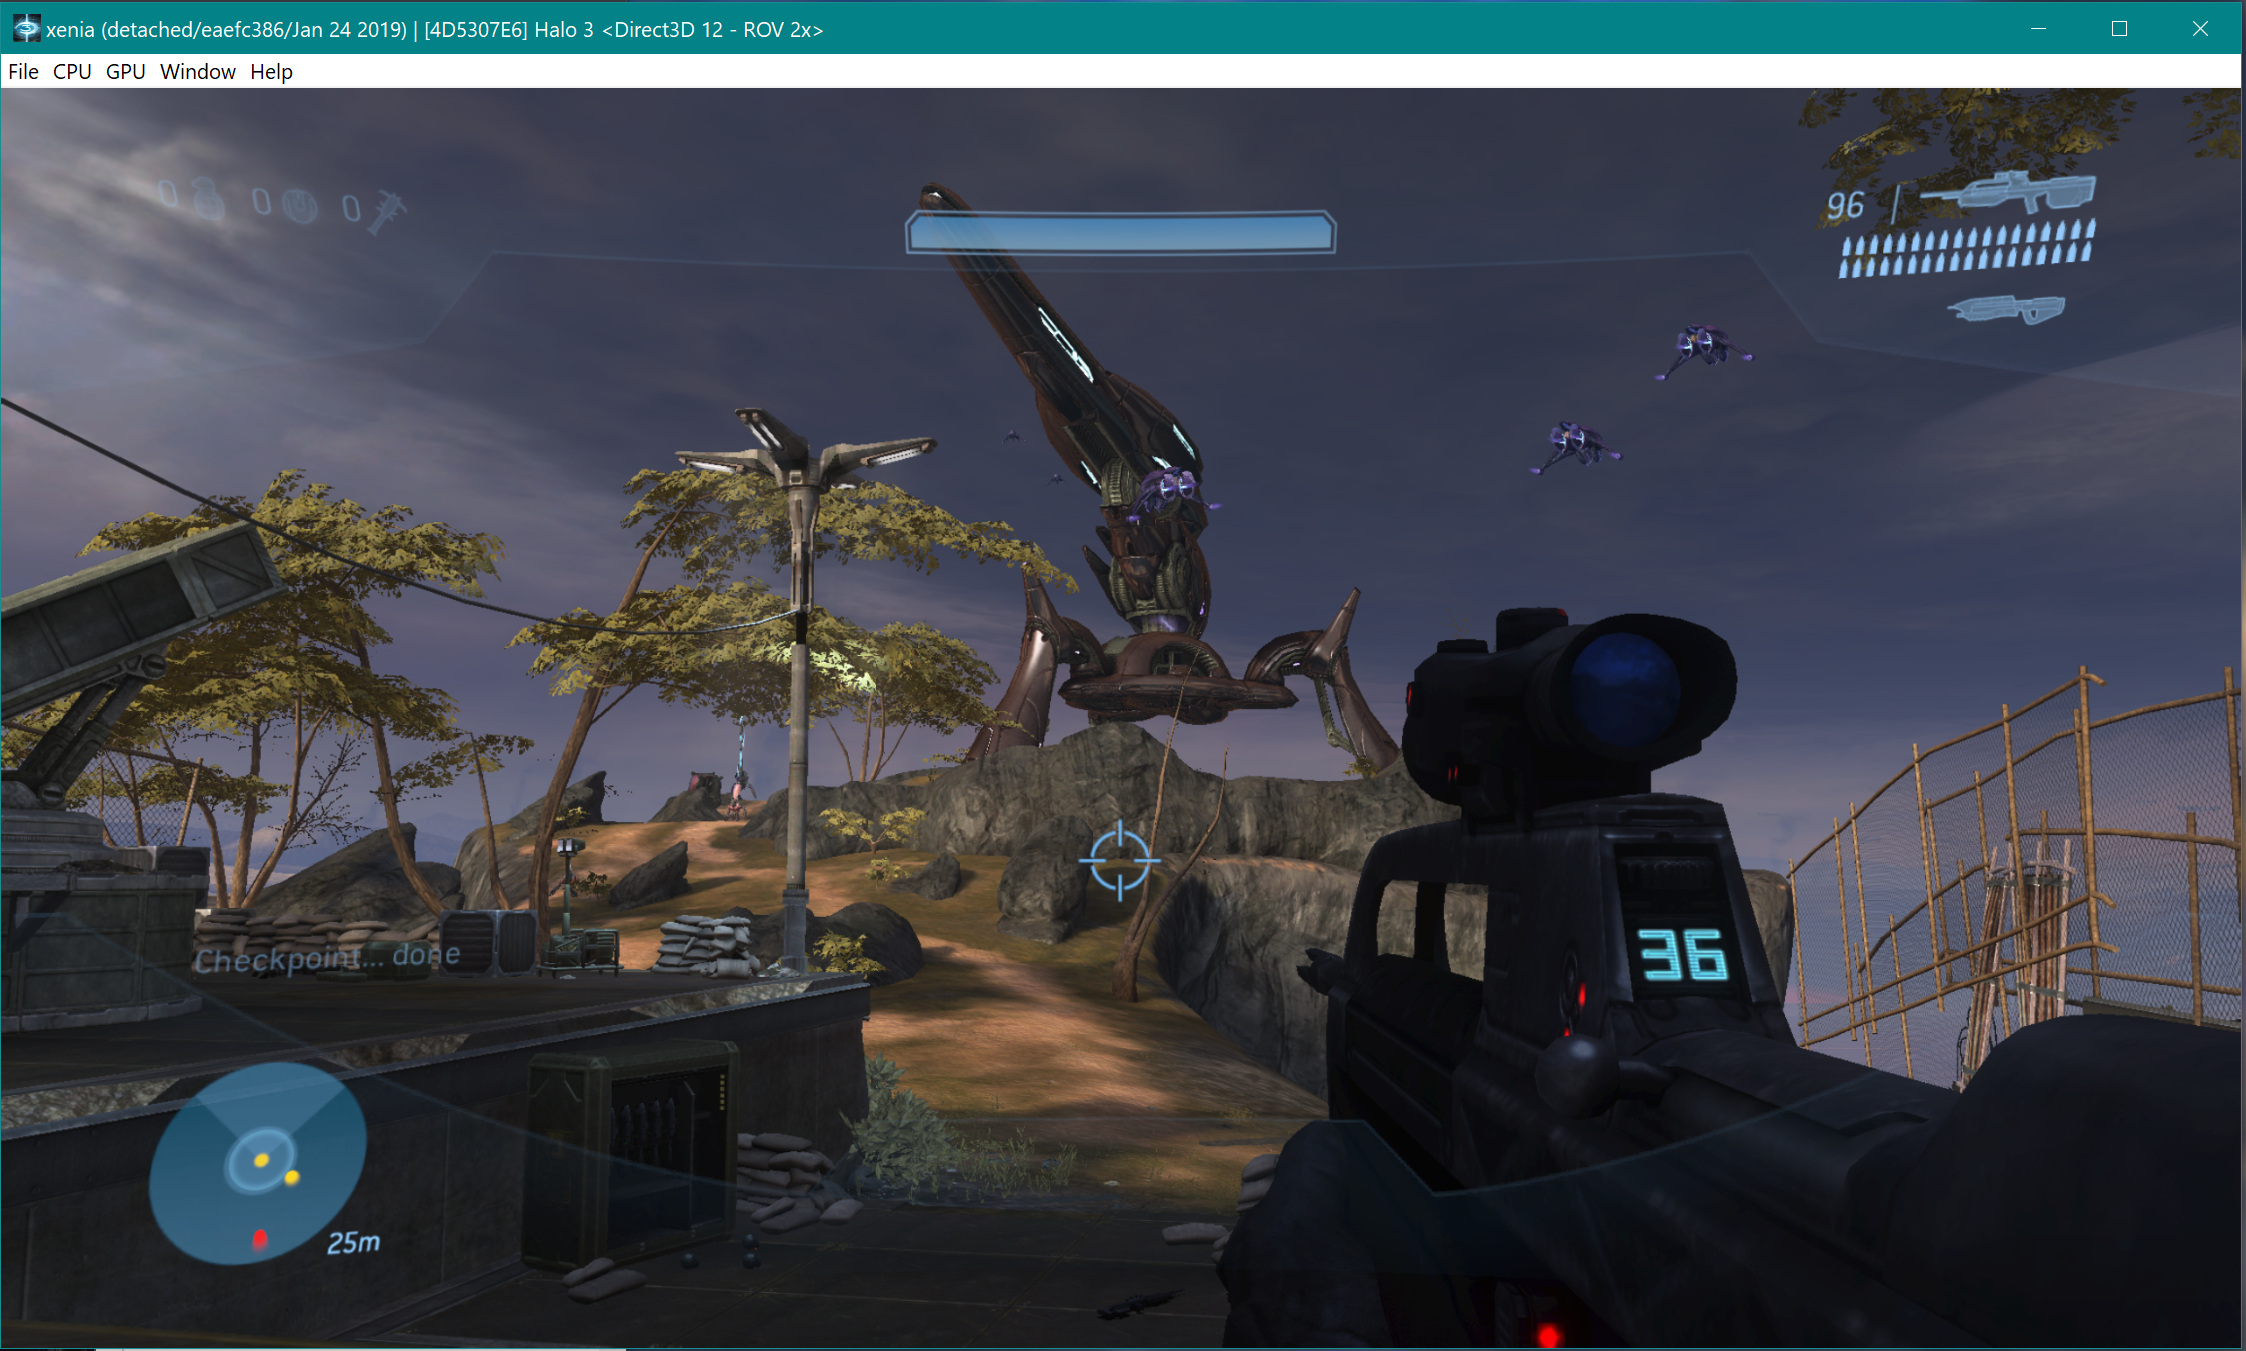 4D5307E6 - Halo 3 · Issue #178 · xenia-project/game-compatibility